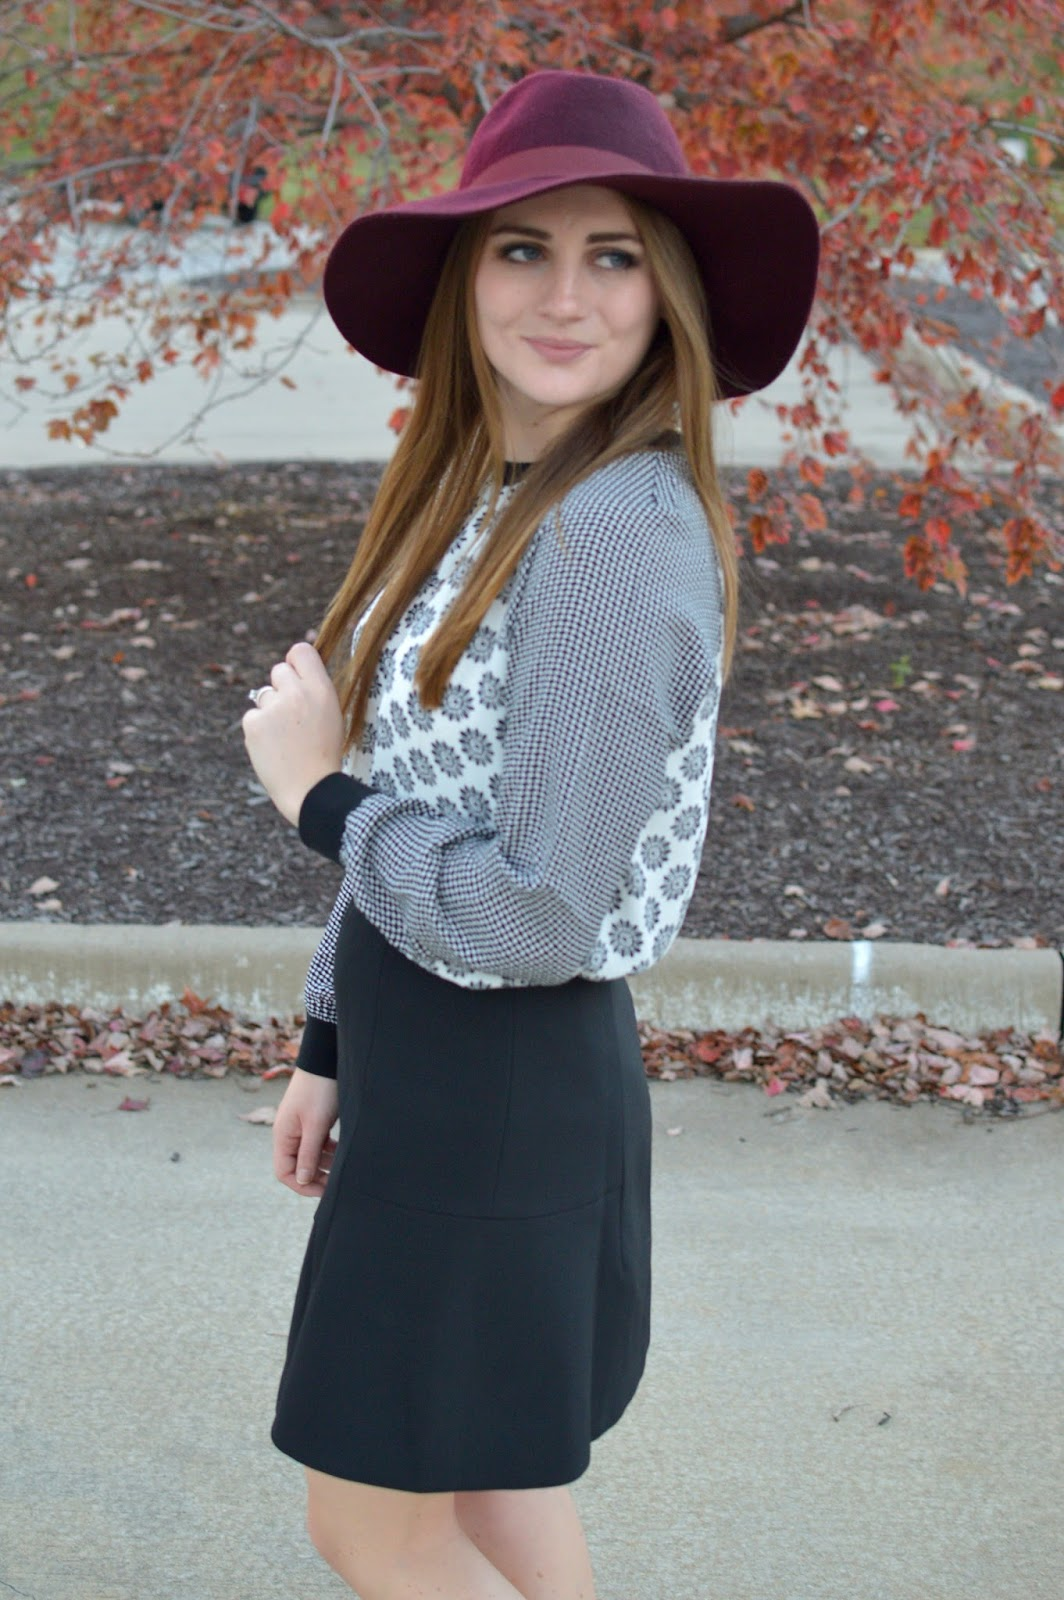 burgundy floppy hat outfit ideas